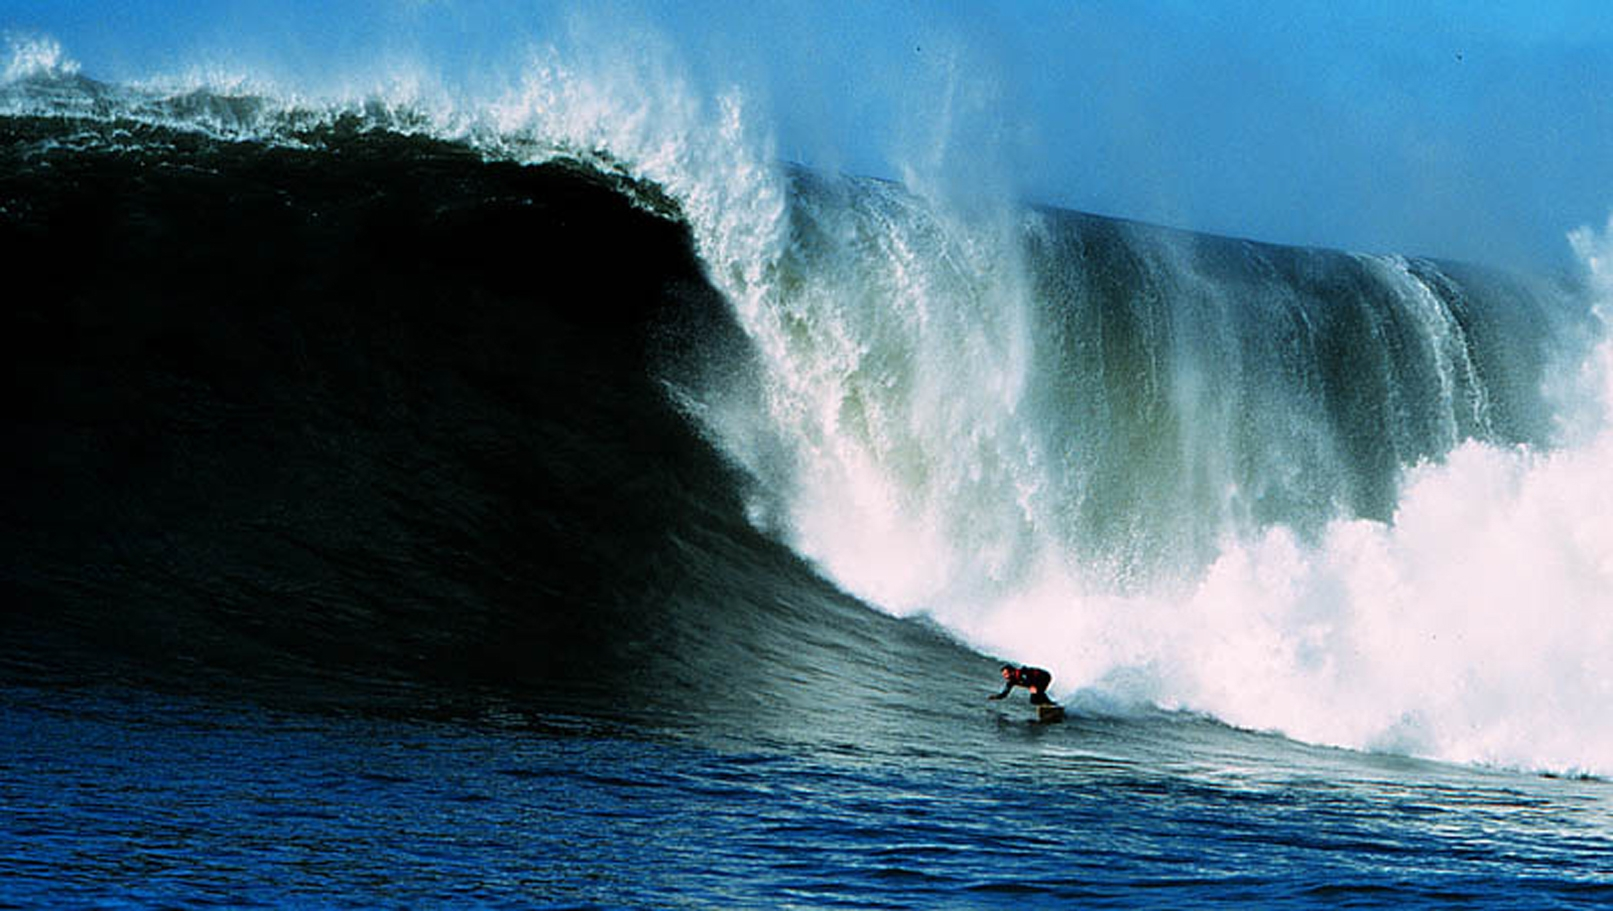 Jeff Clark at Mavericks